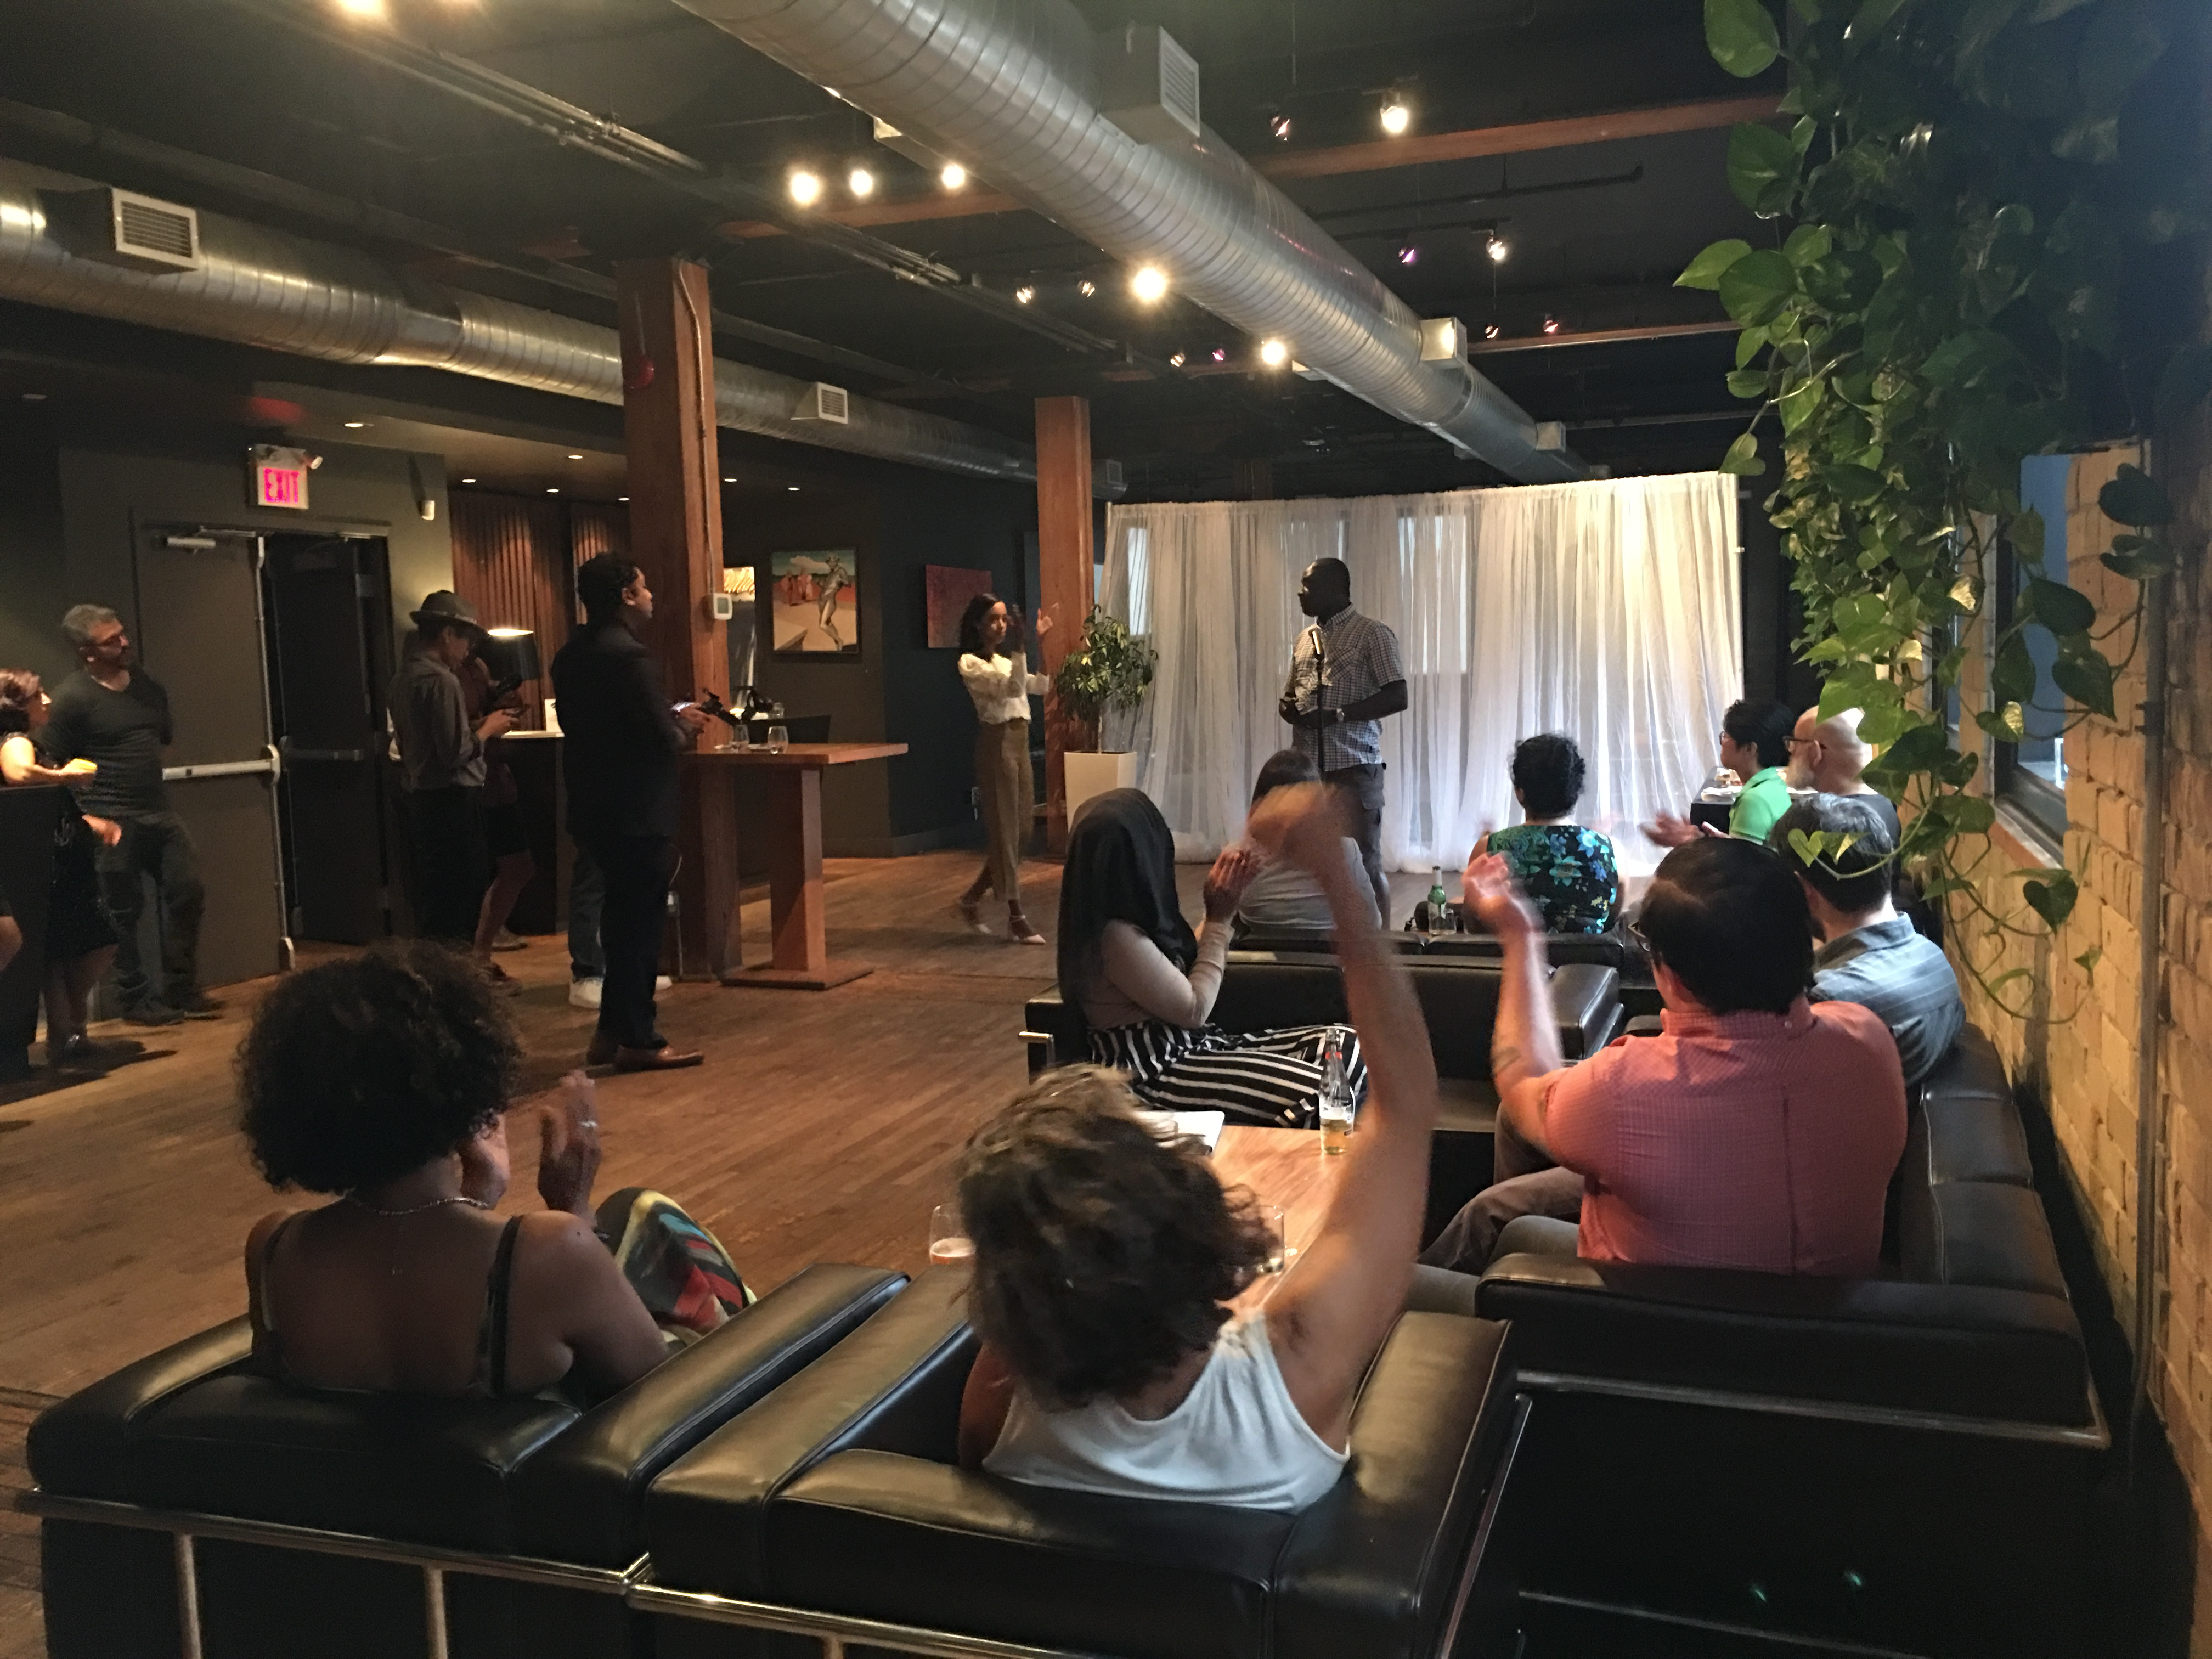 7:22 p.m. Aug. 29, 2018. City councillor candidate and challenger to Bill 5 Rocco Achampong speaking at a fundraiser for Saron Gebresellasi at The Spoke Club this past week.